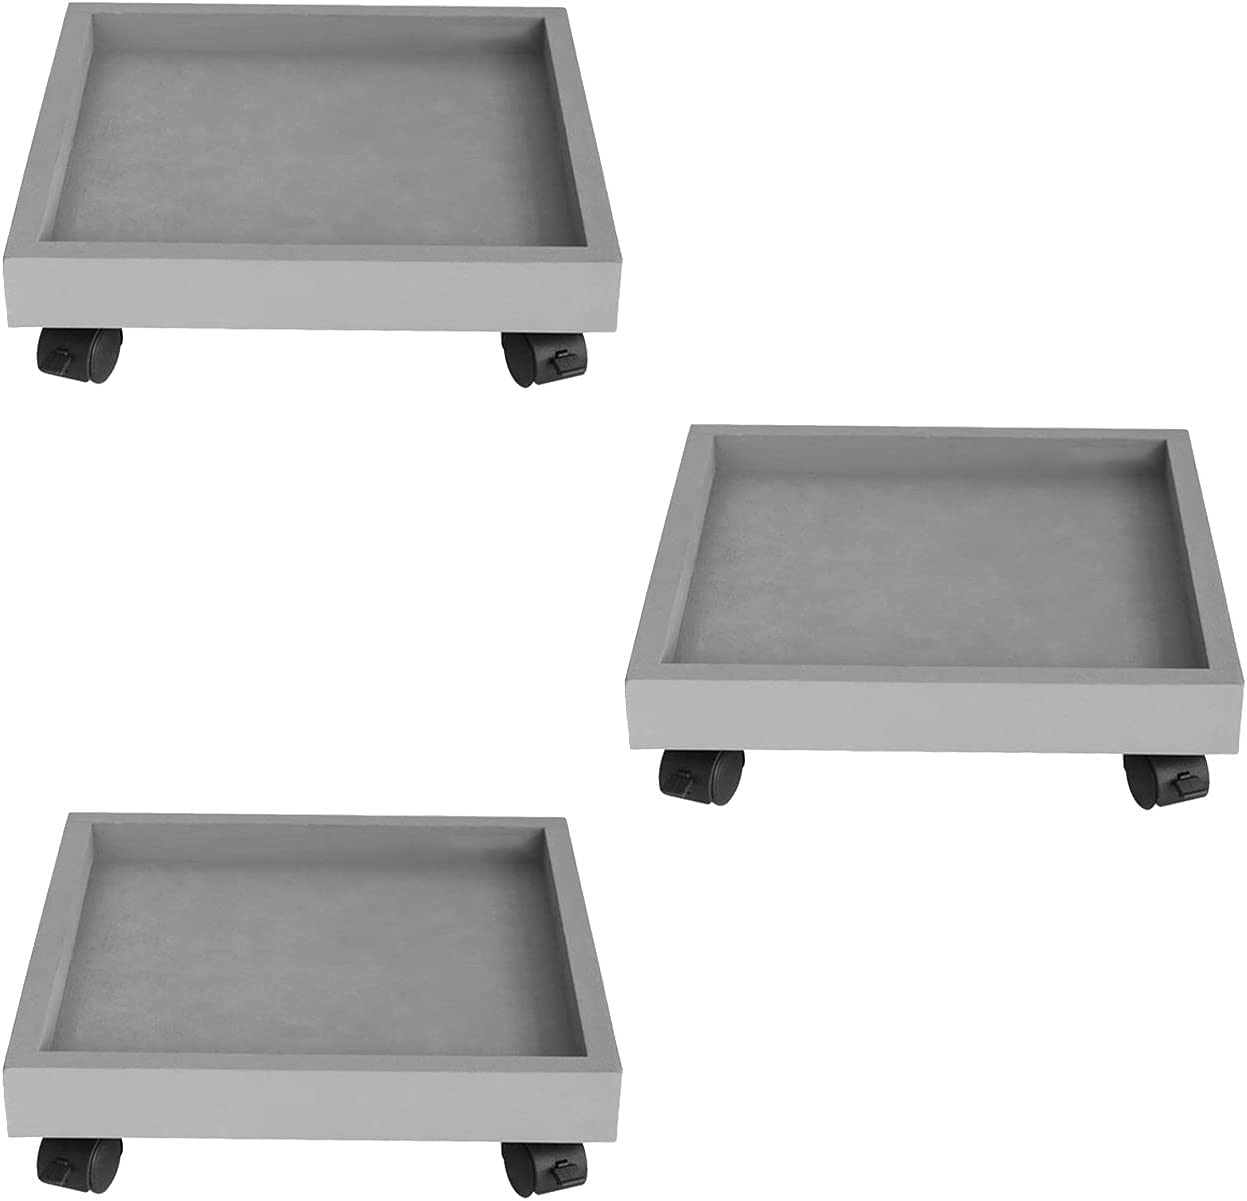 3 Pack Plant Holder Max 88% OFF with on Tray Wheels Universal lowest price